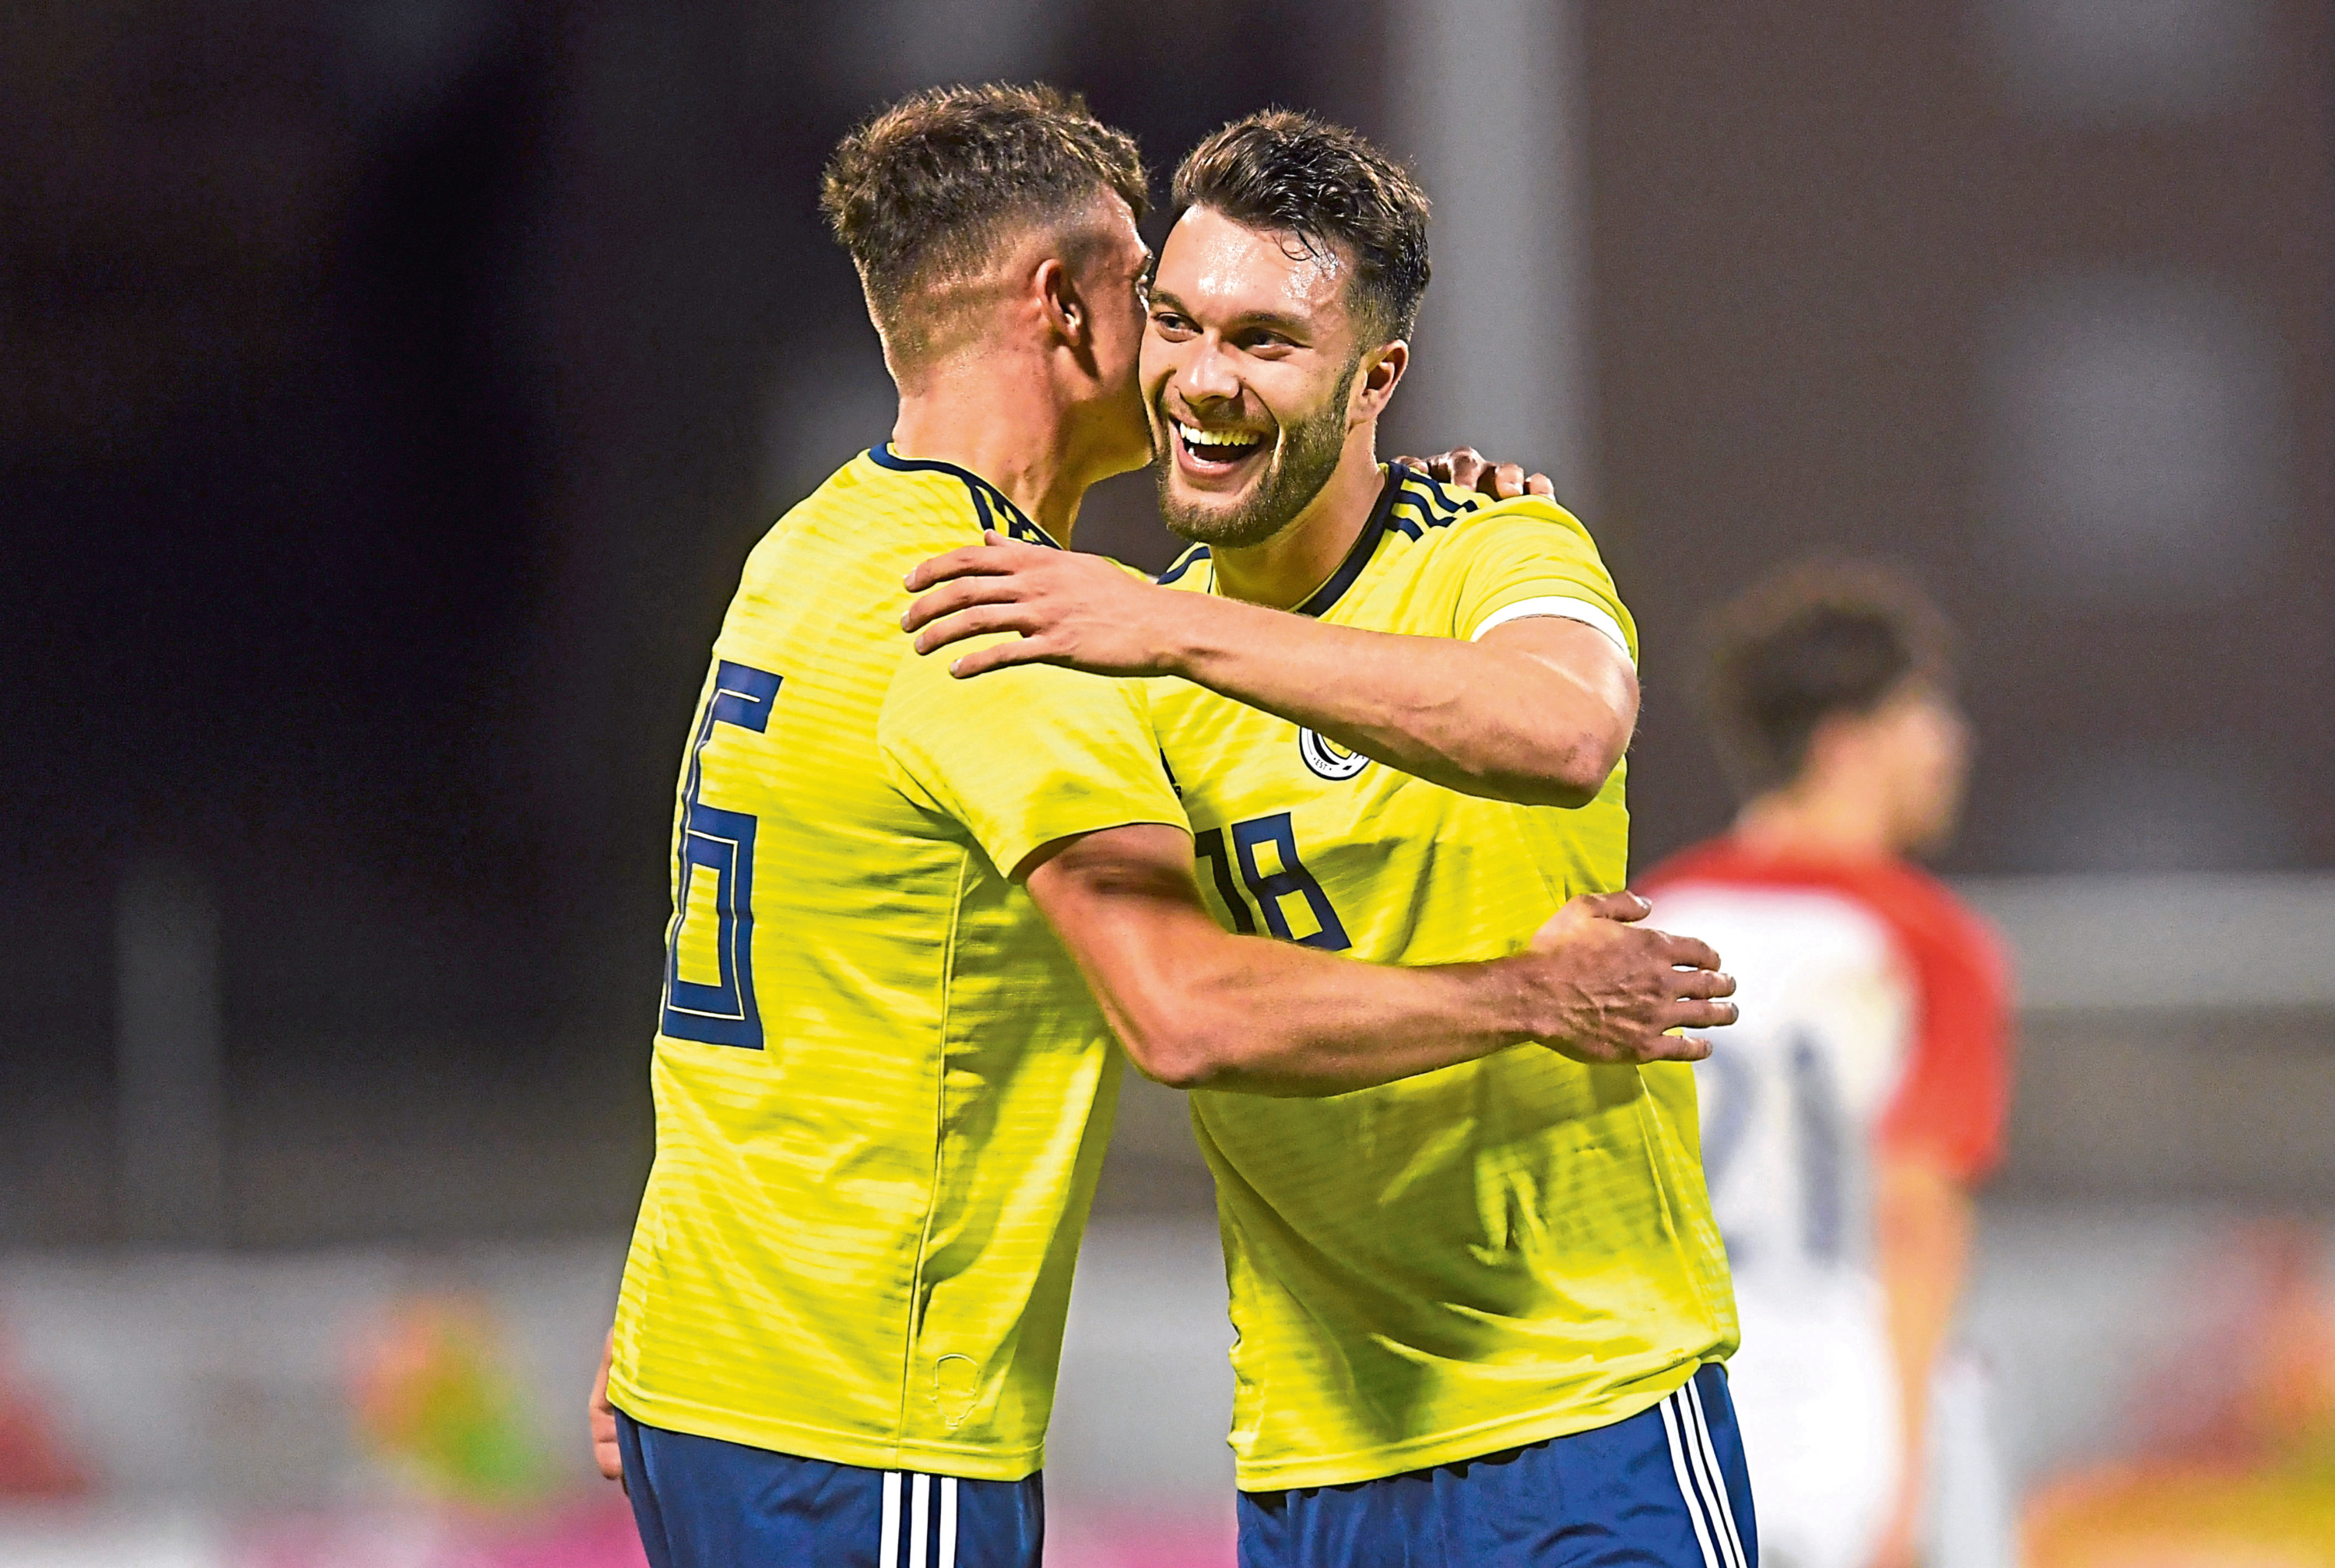 Scotland's Barry Macguire, left, and Connor McLennan celebrate his performance against Croatia.